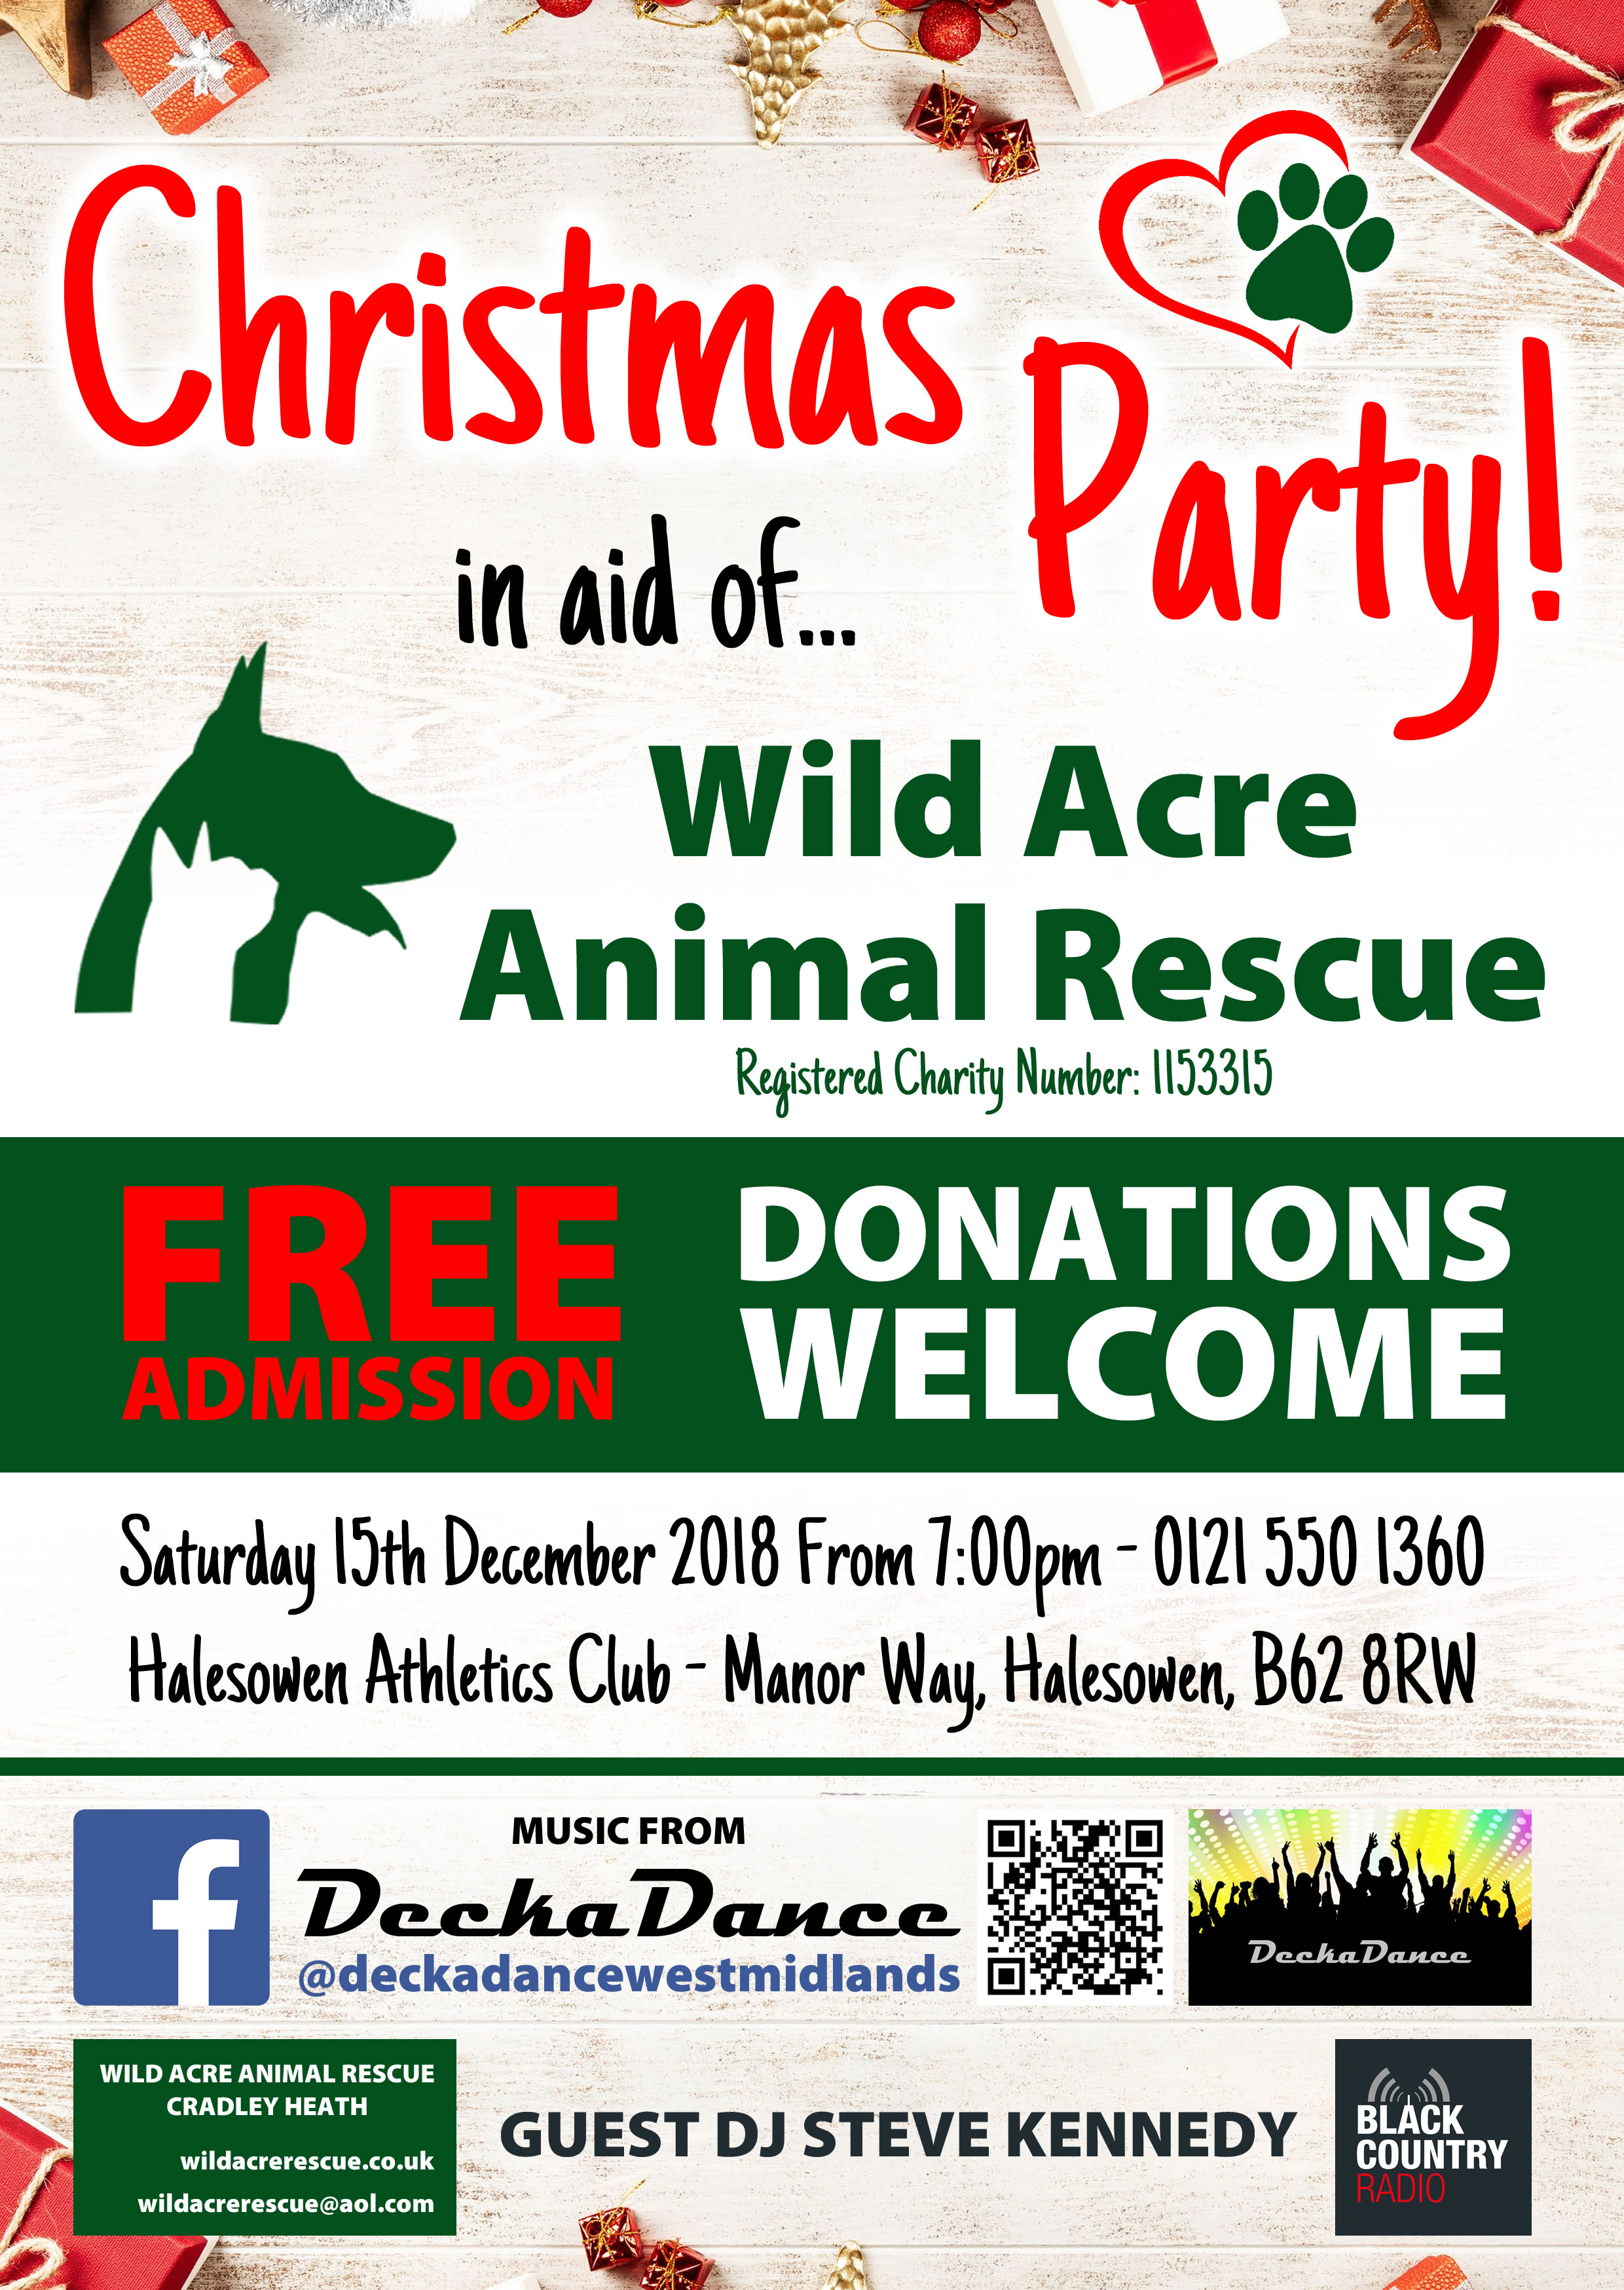 Wild Acre Animal Rescue designed by Screen-Dreams